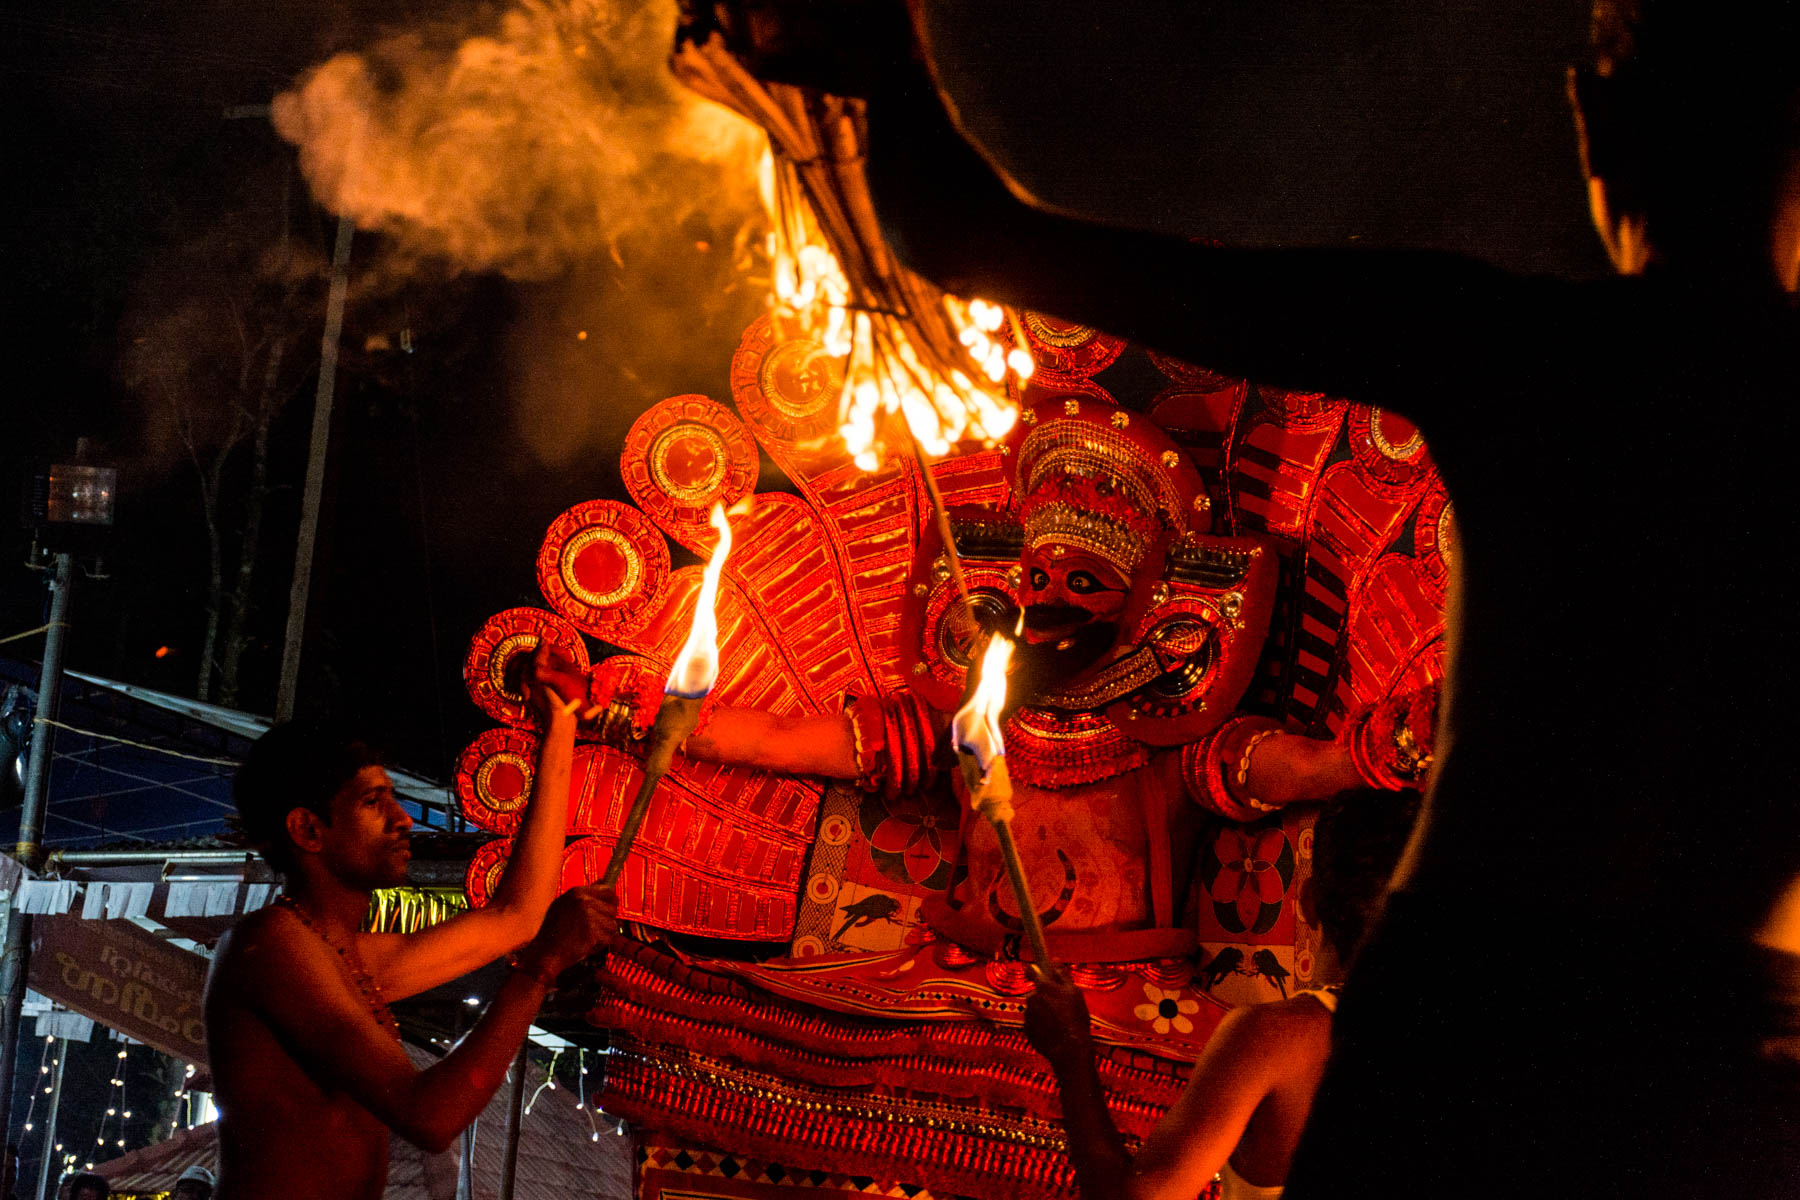 Kutty Theyyam near Kannur - Where to see Theyyam in Kerala, India - Lost With Purpose